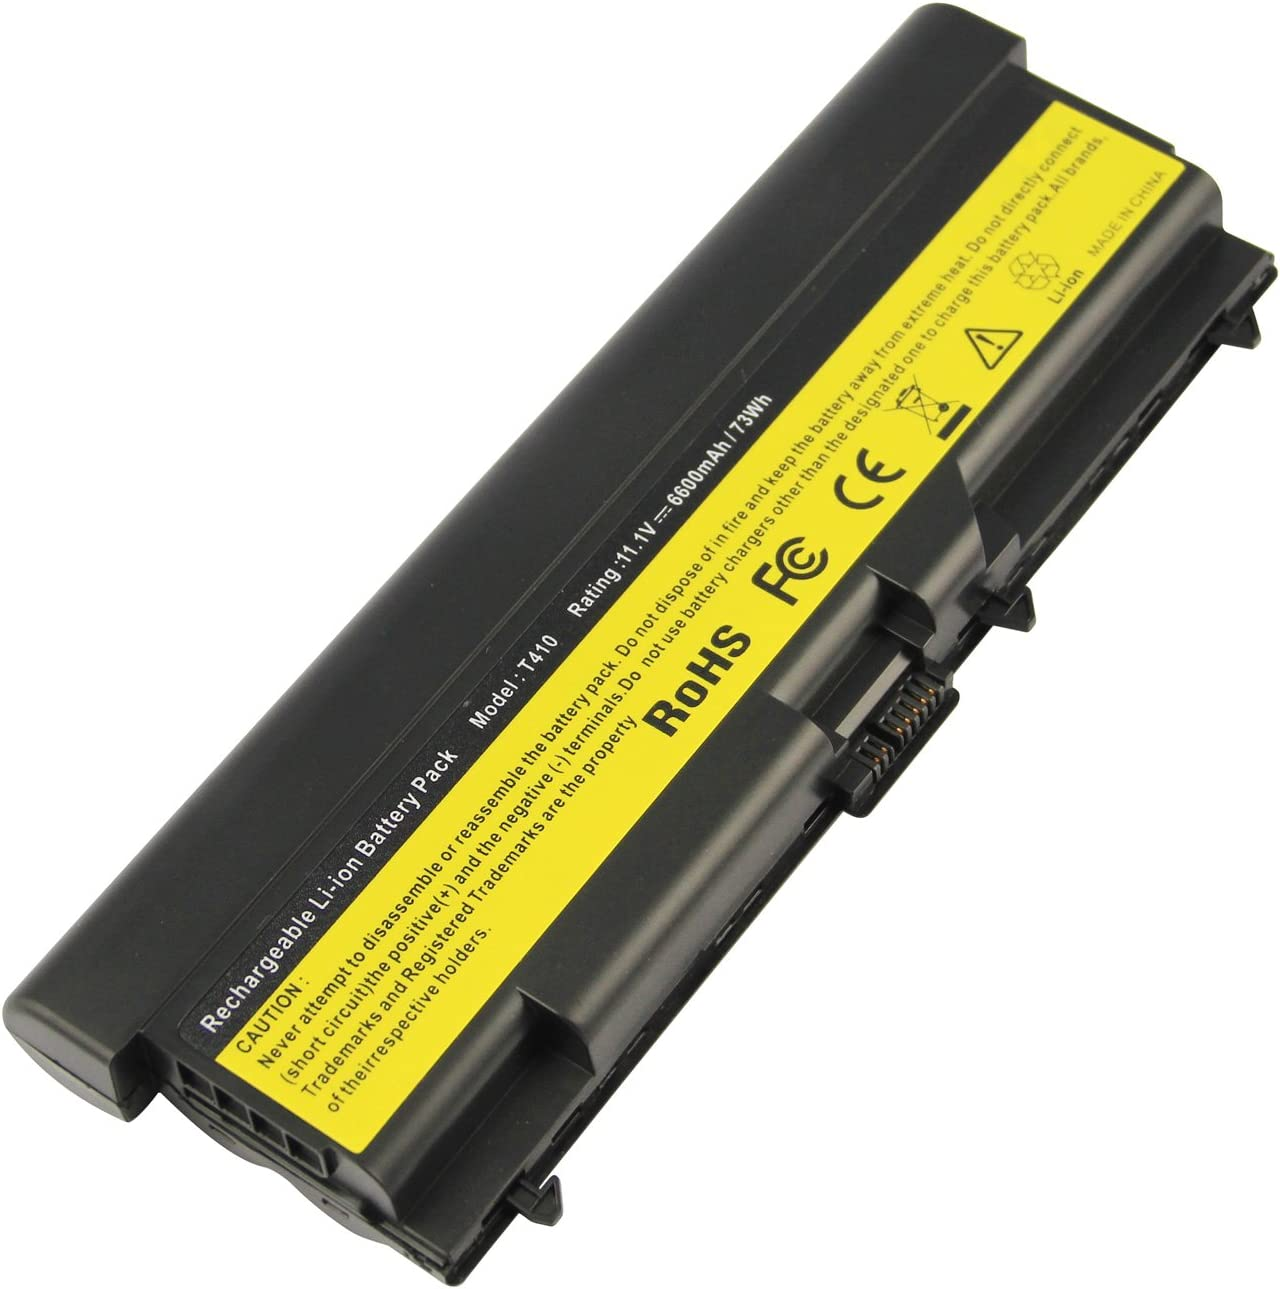 Futurebatt 9Cell 6600mAh Laptop Battery for Lenovo ThinkPad 55++ T410 T420 E420 T510 T510i T520 T520i SL410 SL510 W510 W520 57Y4186 42T4799 42T4798